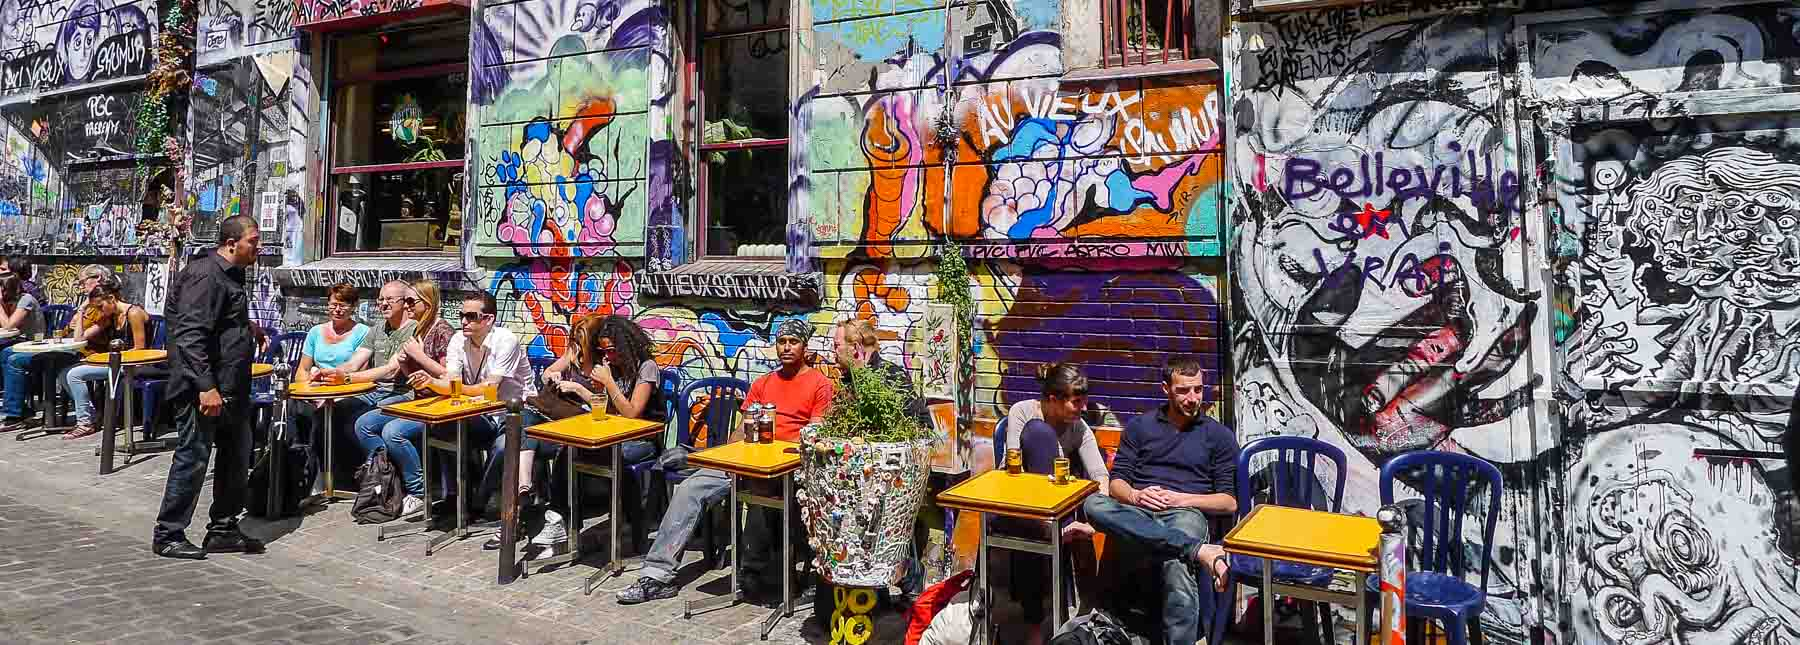 People sitting at tables in front of painted wall.